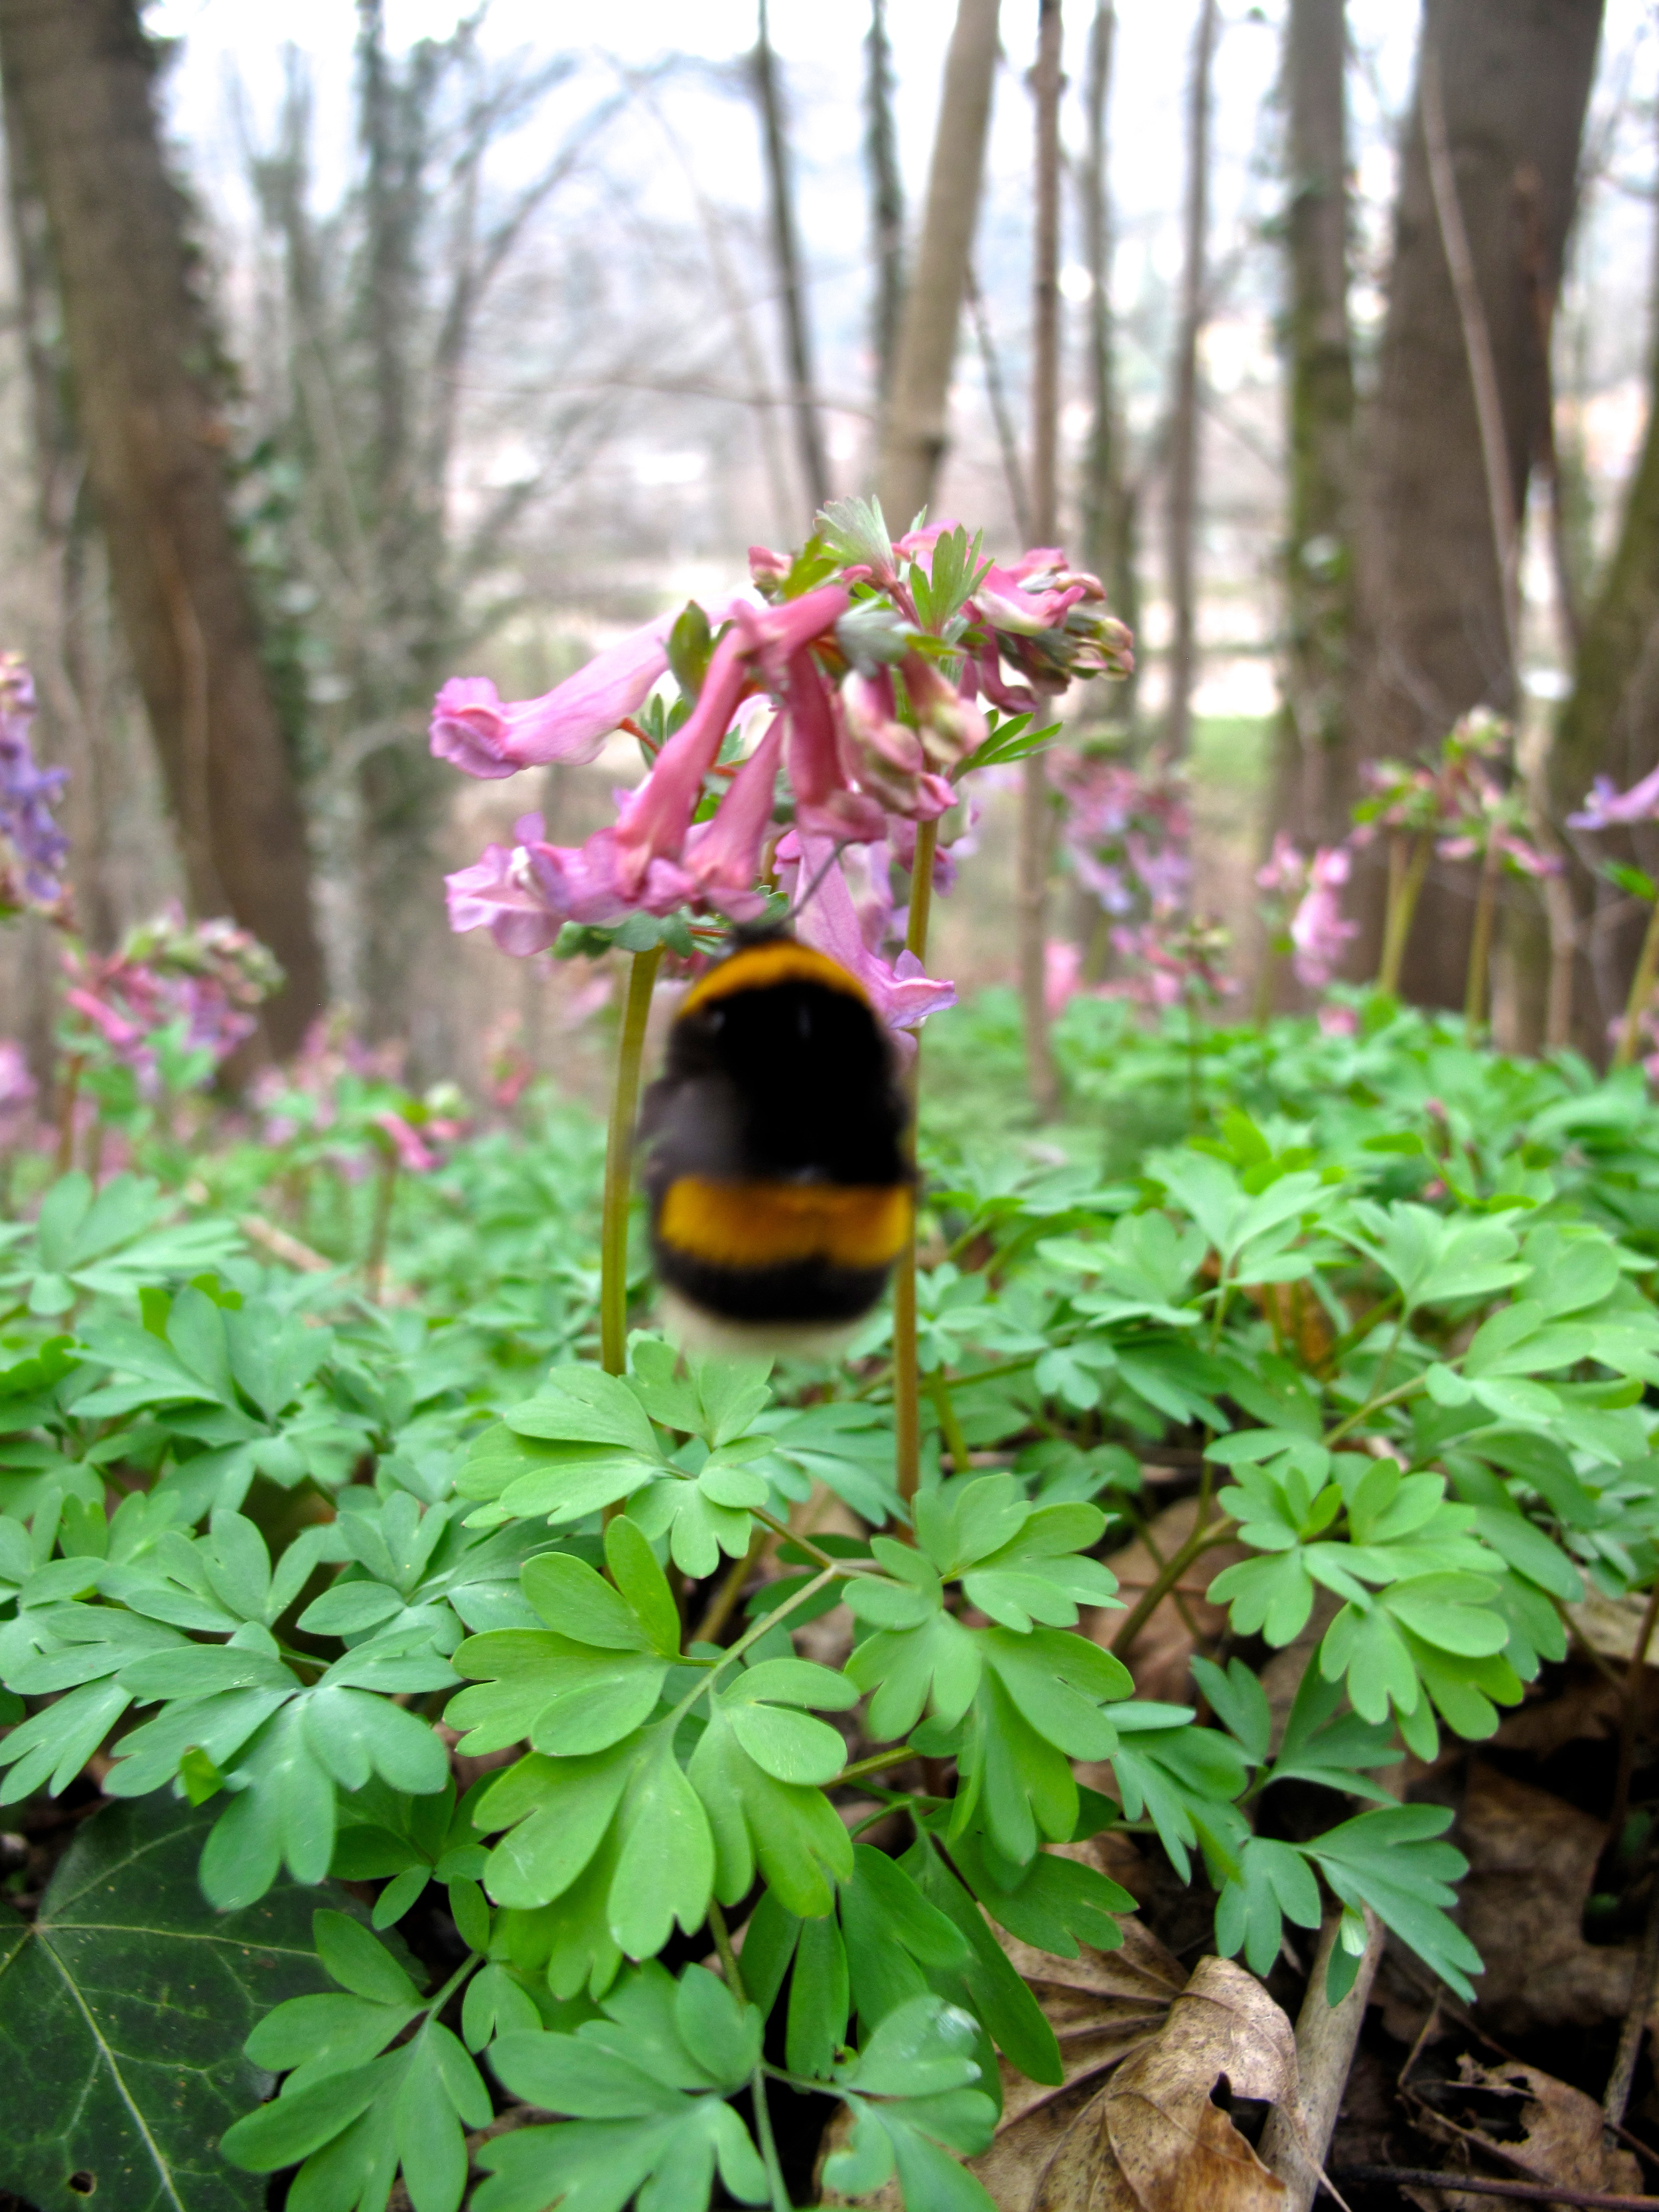 Bumblebee and purple flowers in a French forest